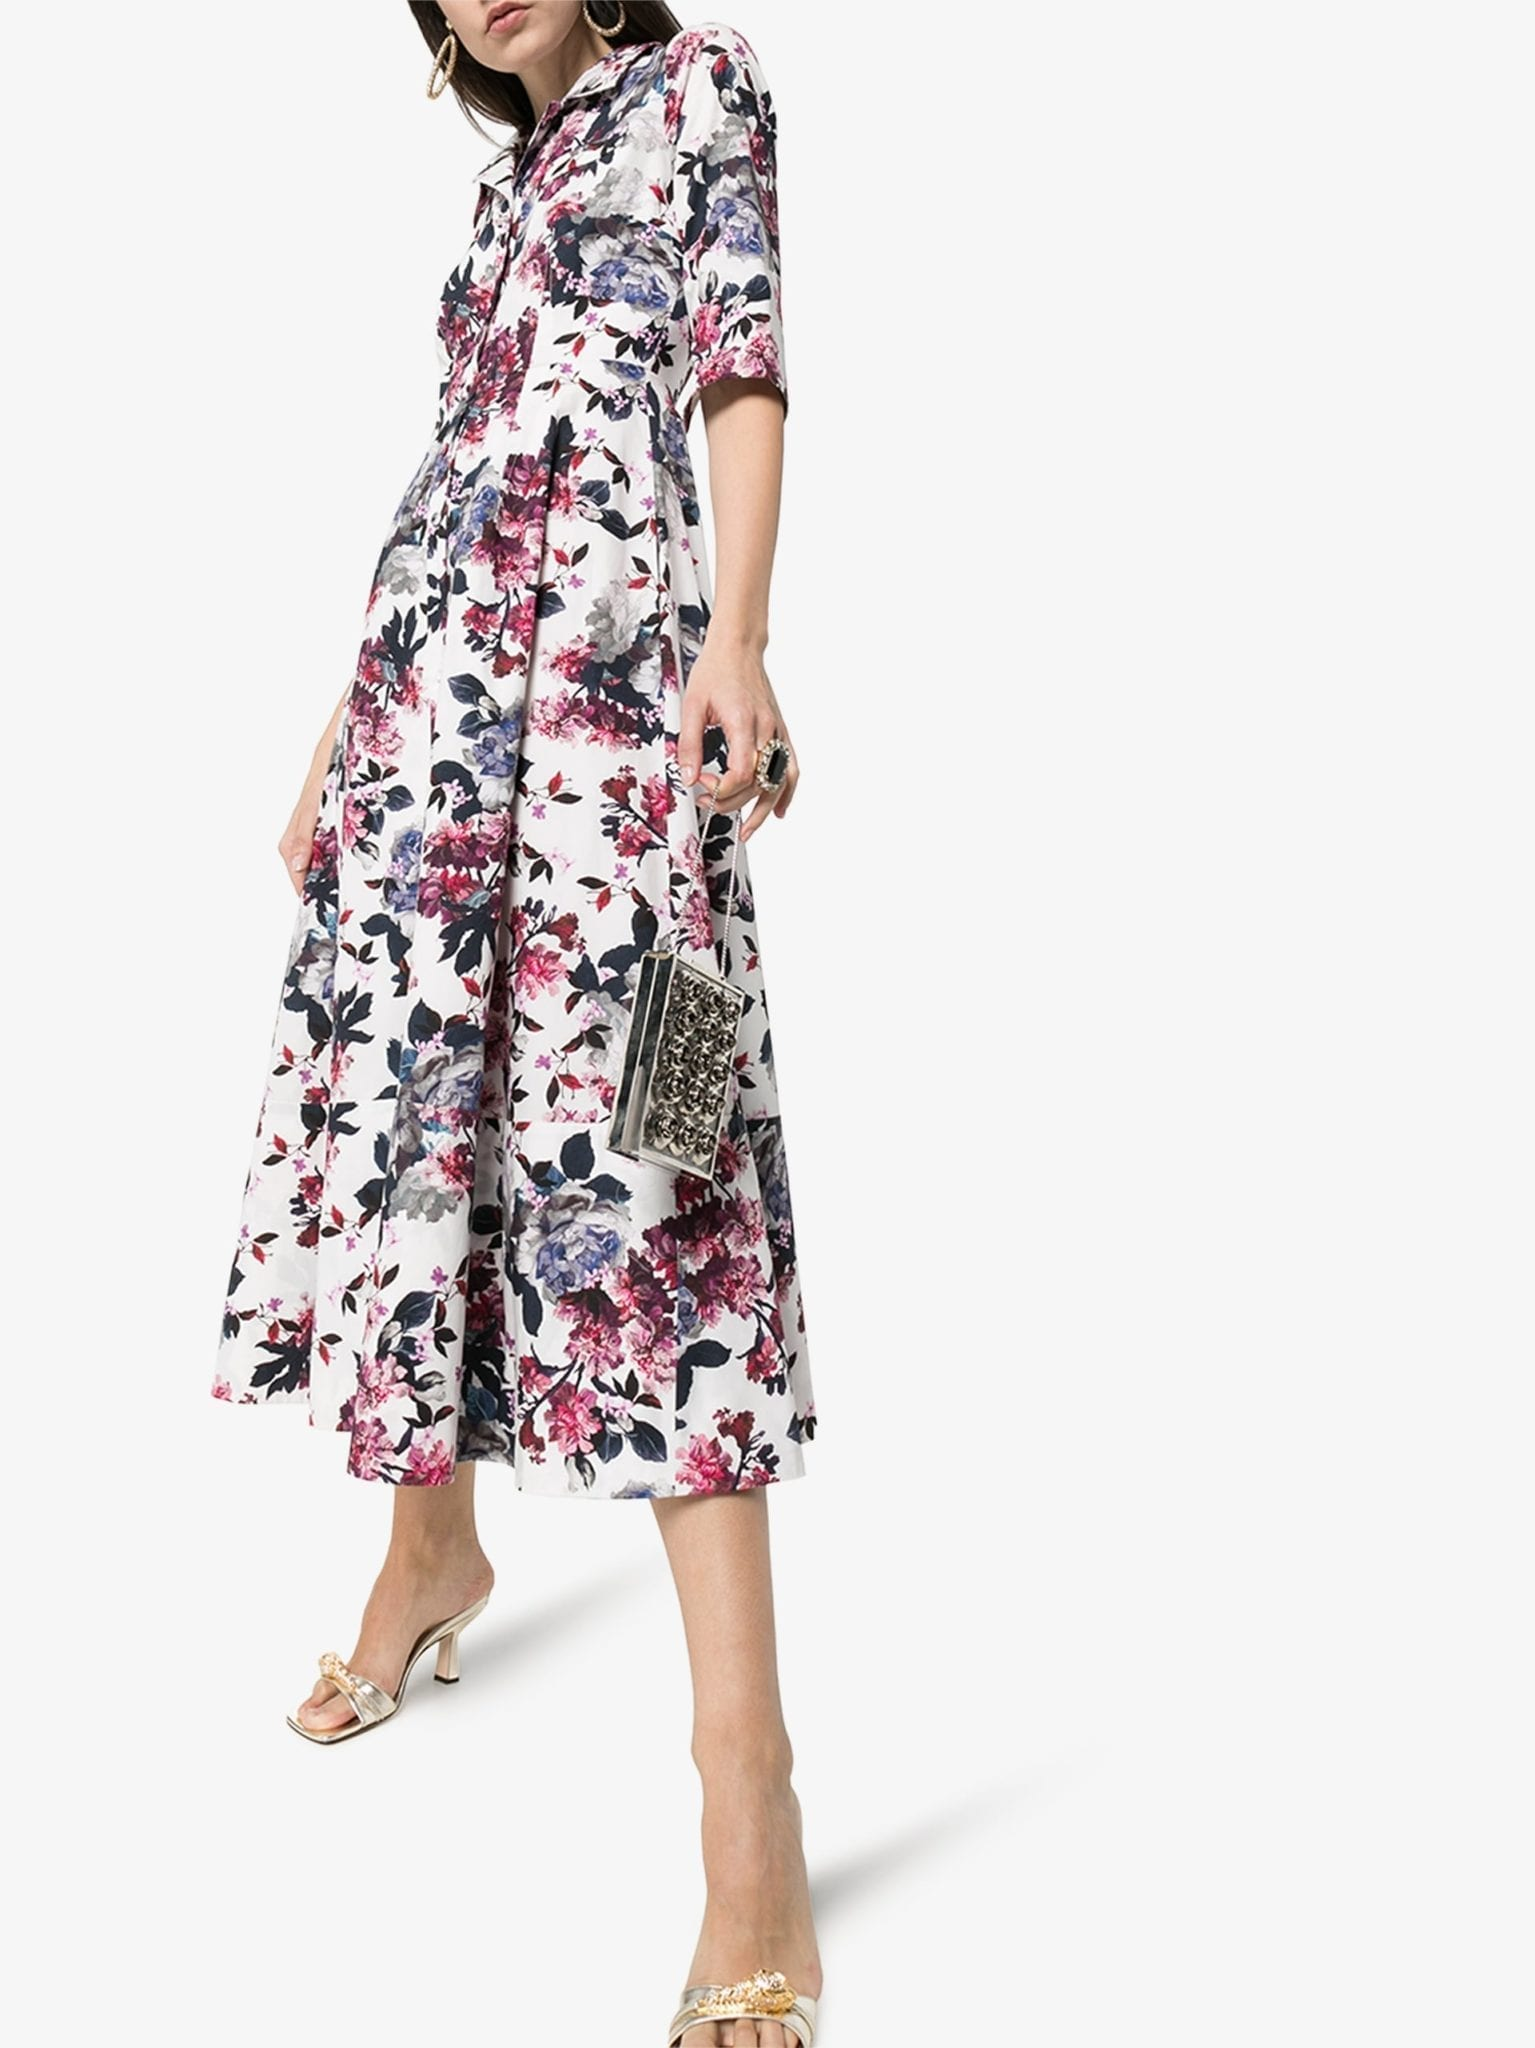 ERDEM Kasia Floral Print Flared Shirt Dress